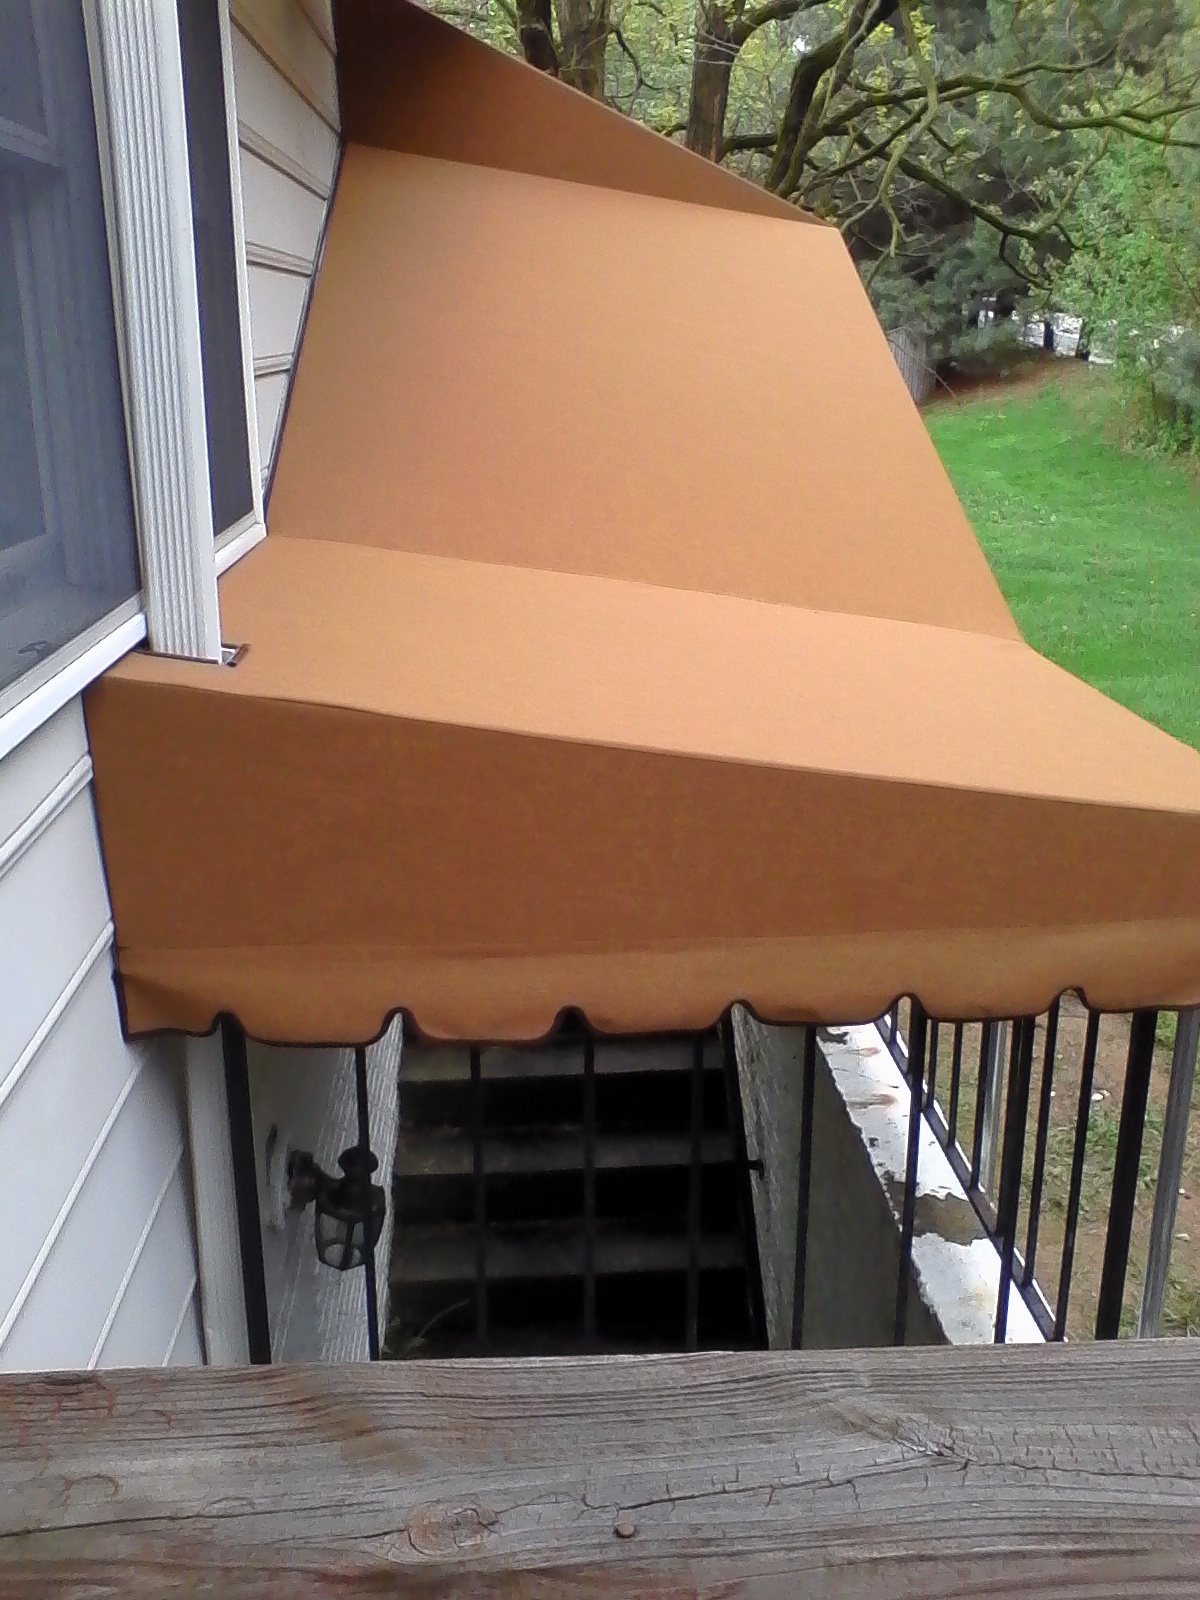 Residential-Stairwell Awning